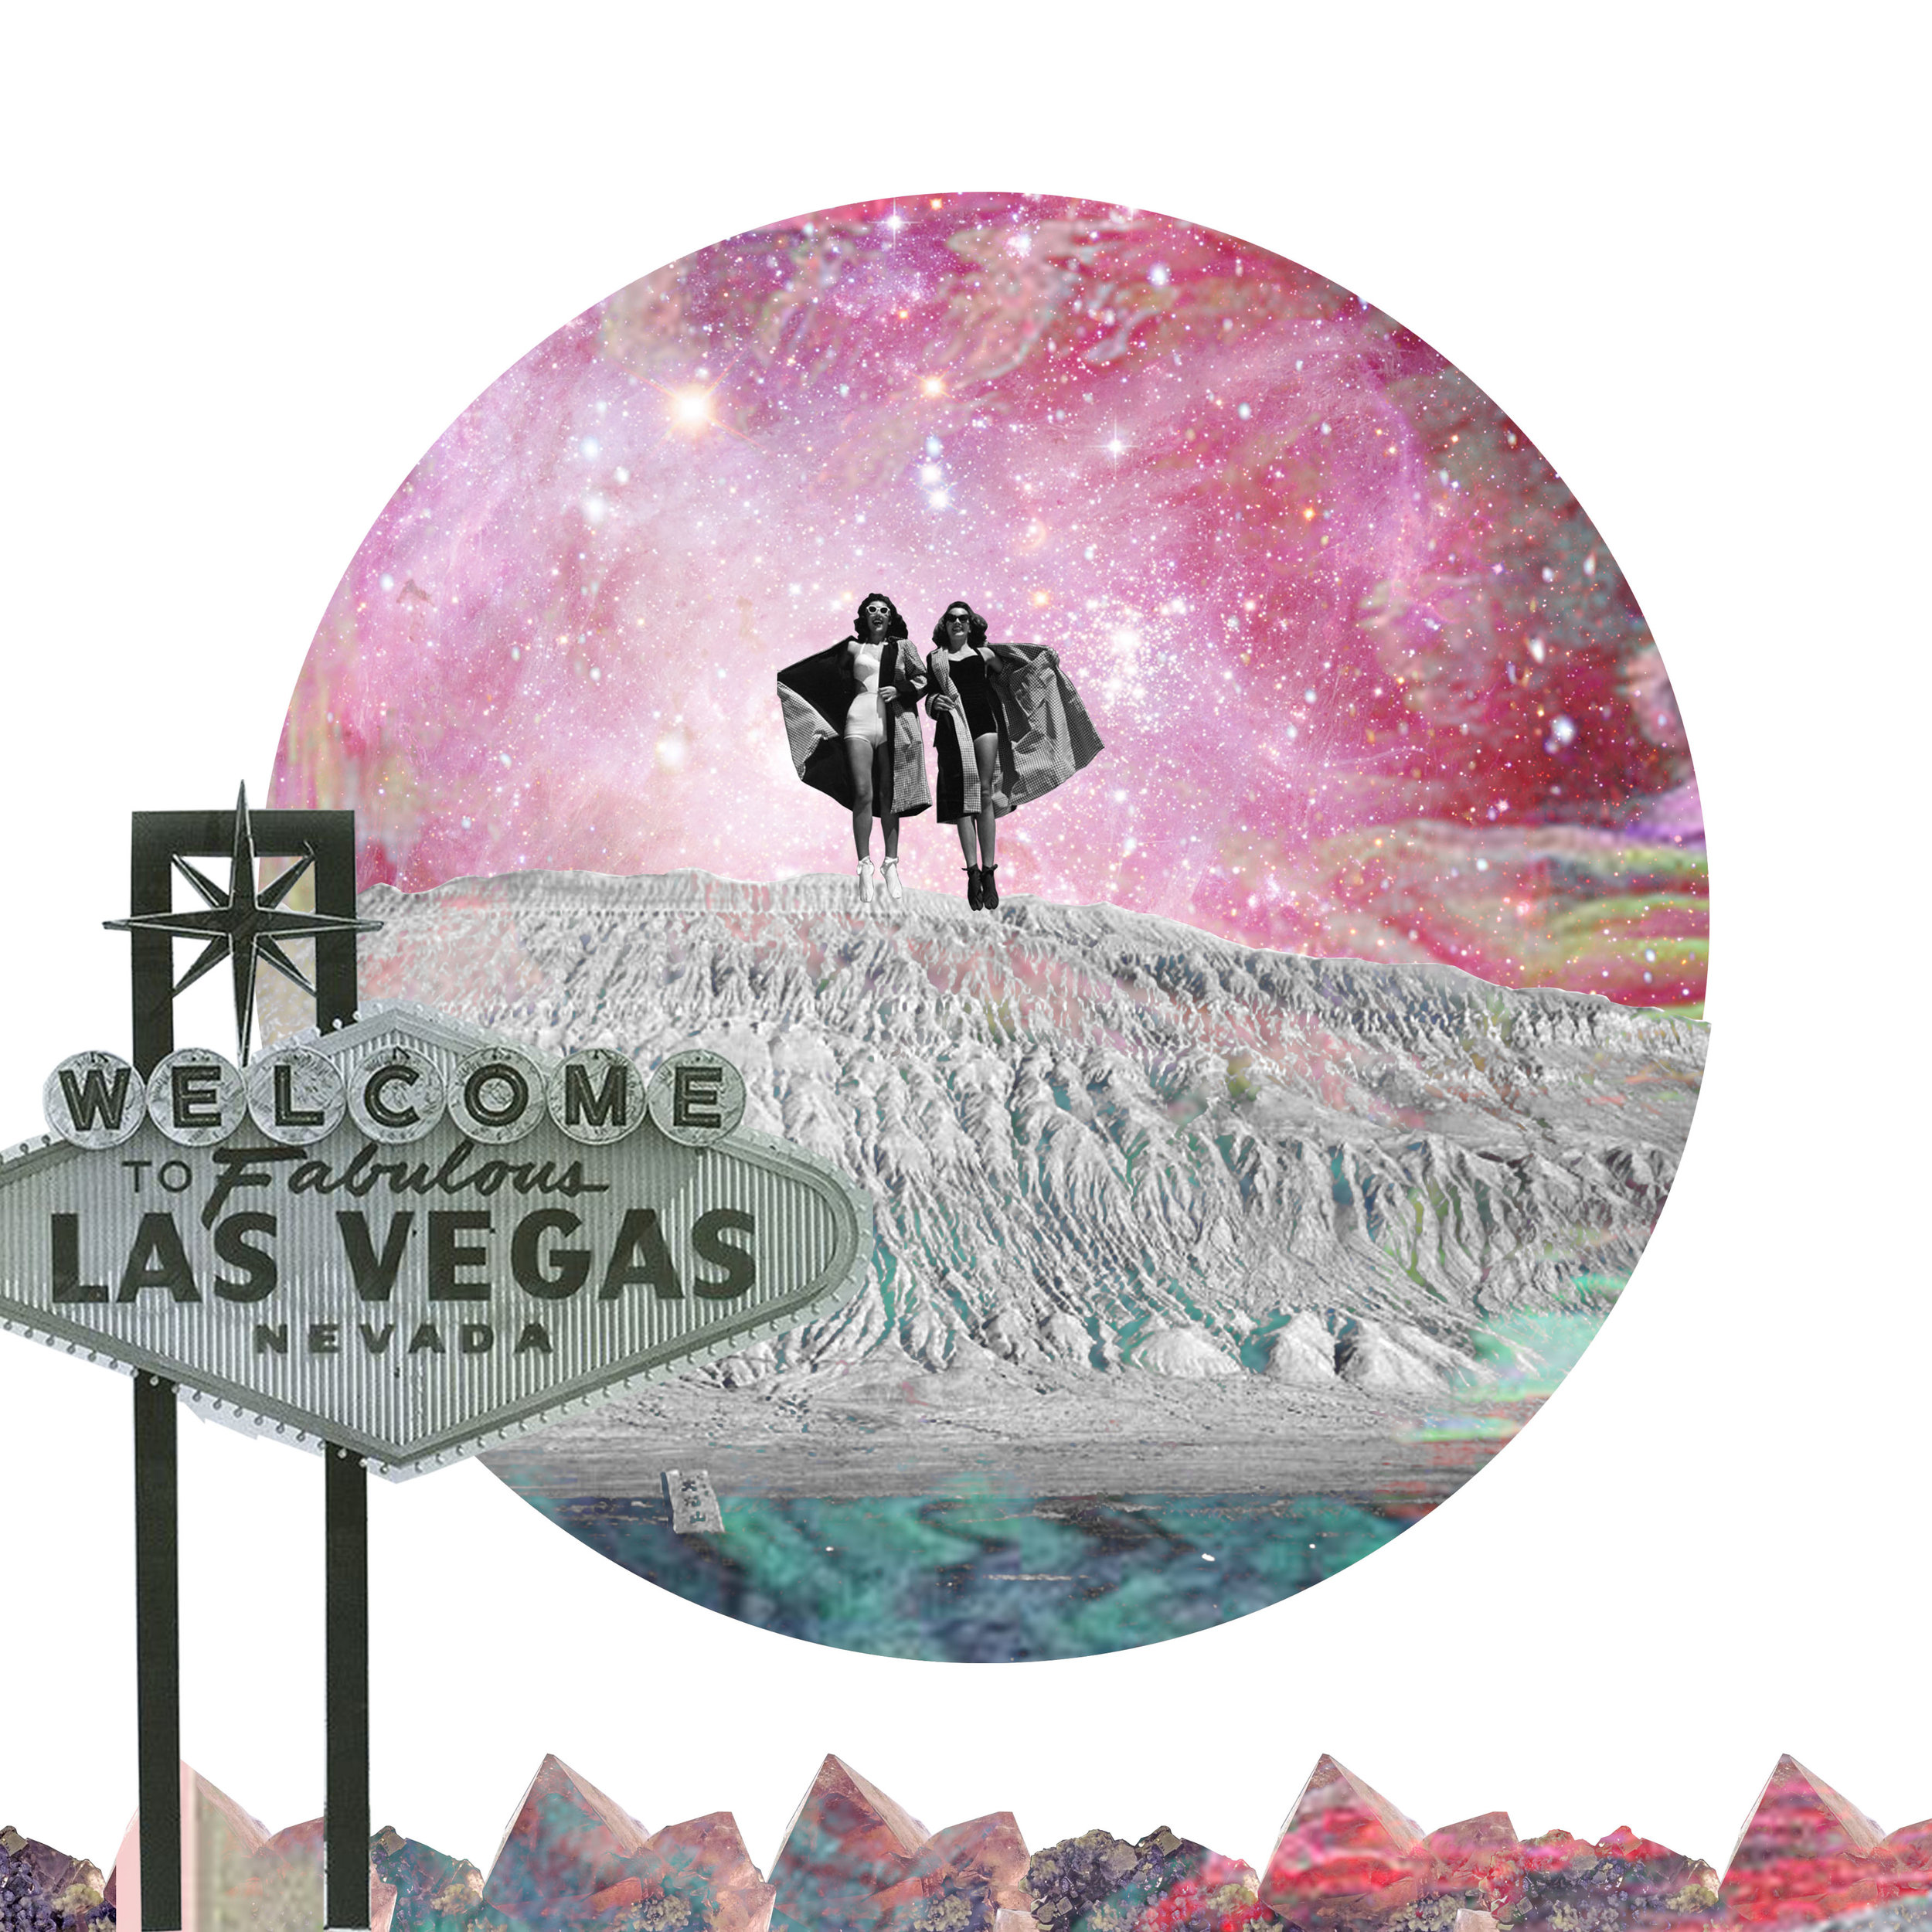 Fei Alexeli_Welcome to Las Vegas_2016_Digital Collage_50 x 50 cm_$325.jpg